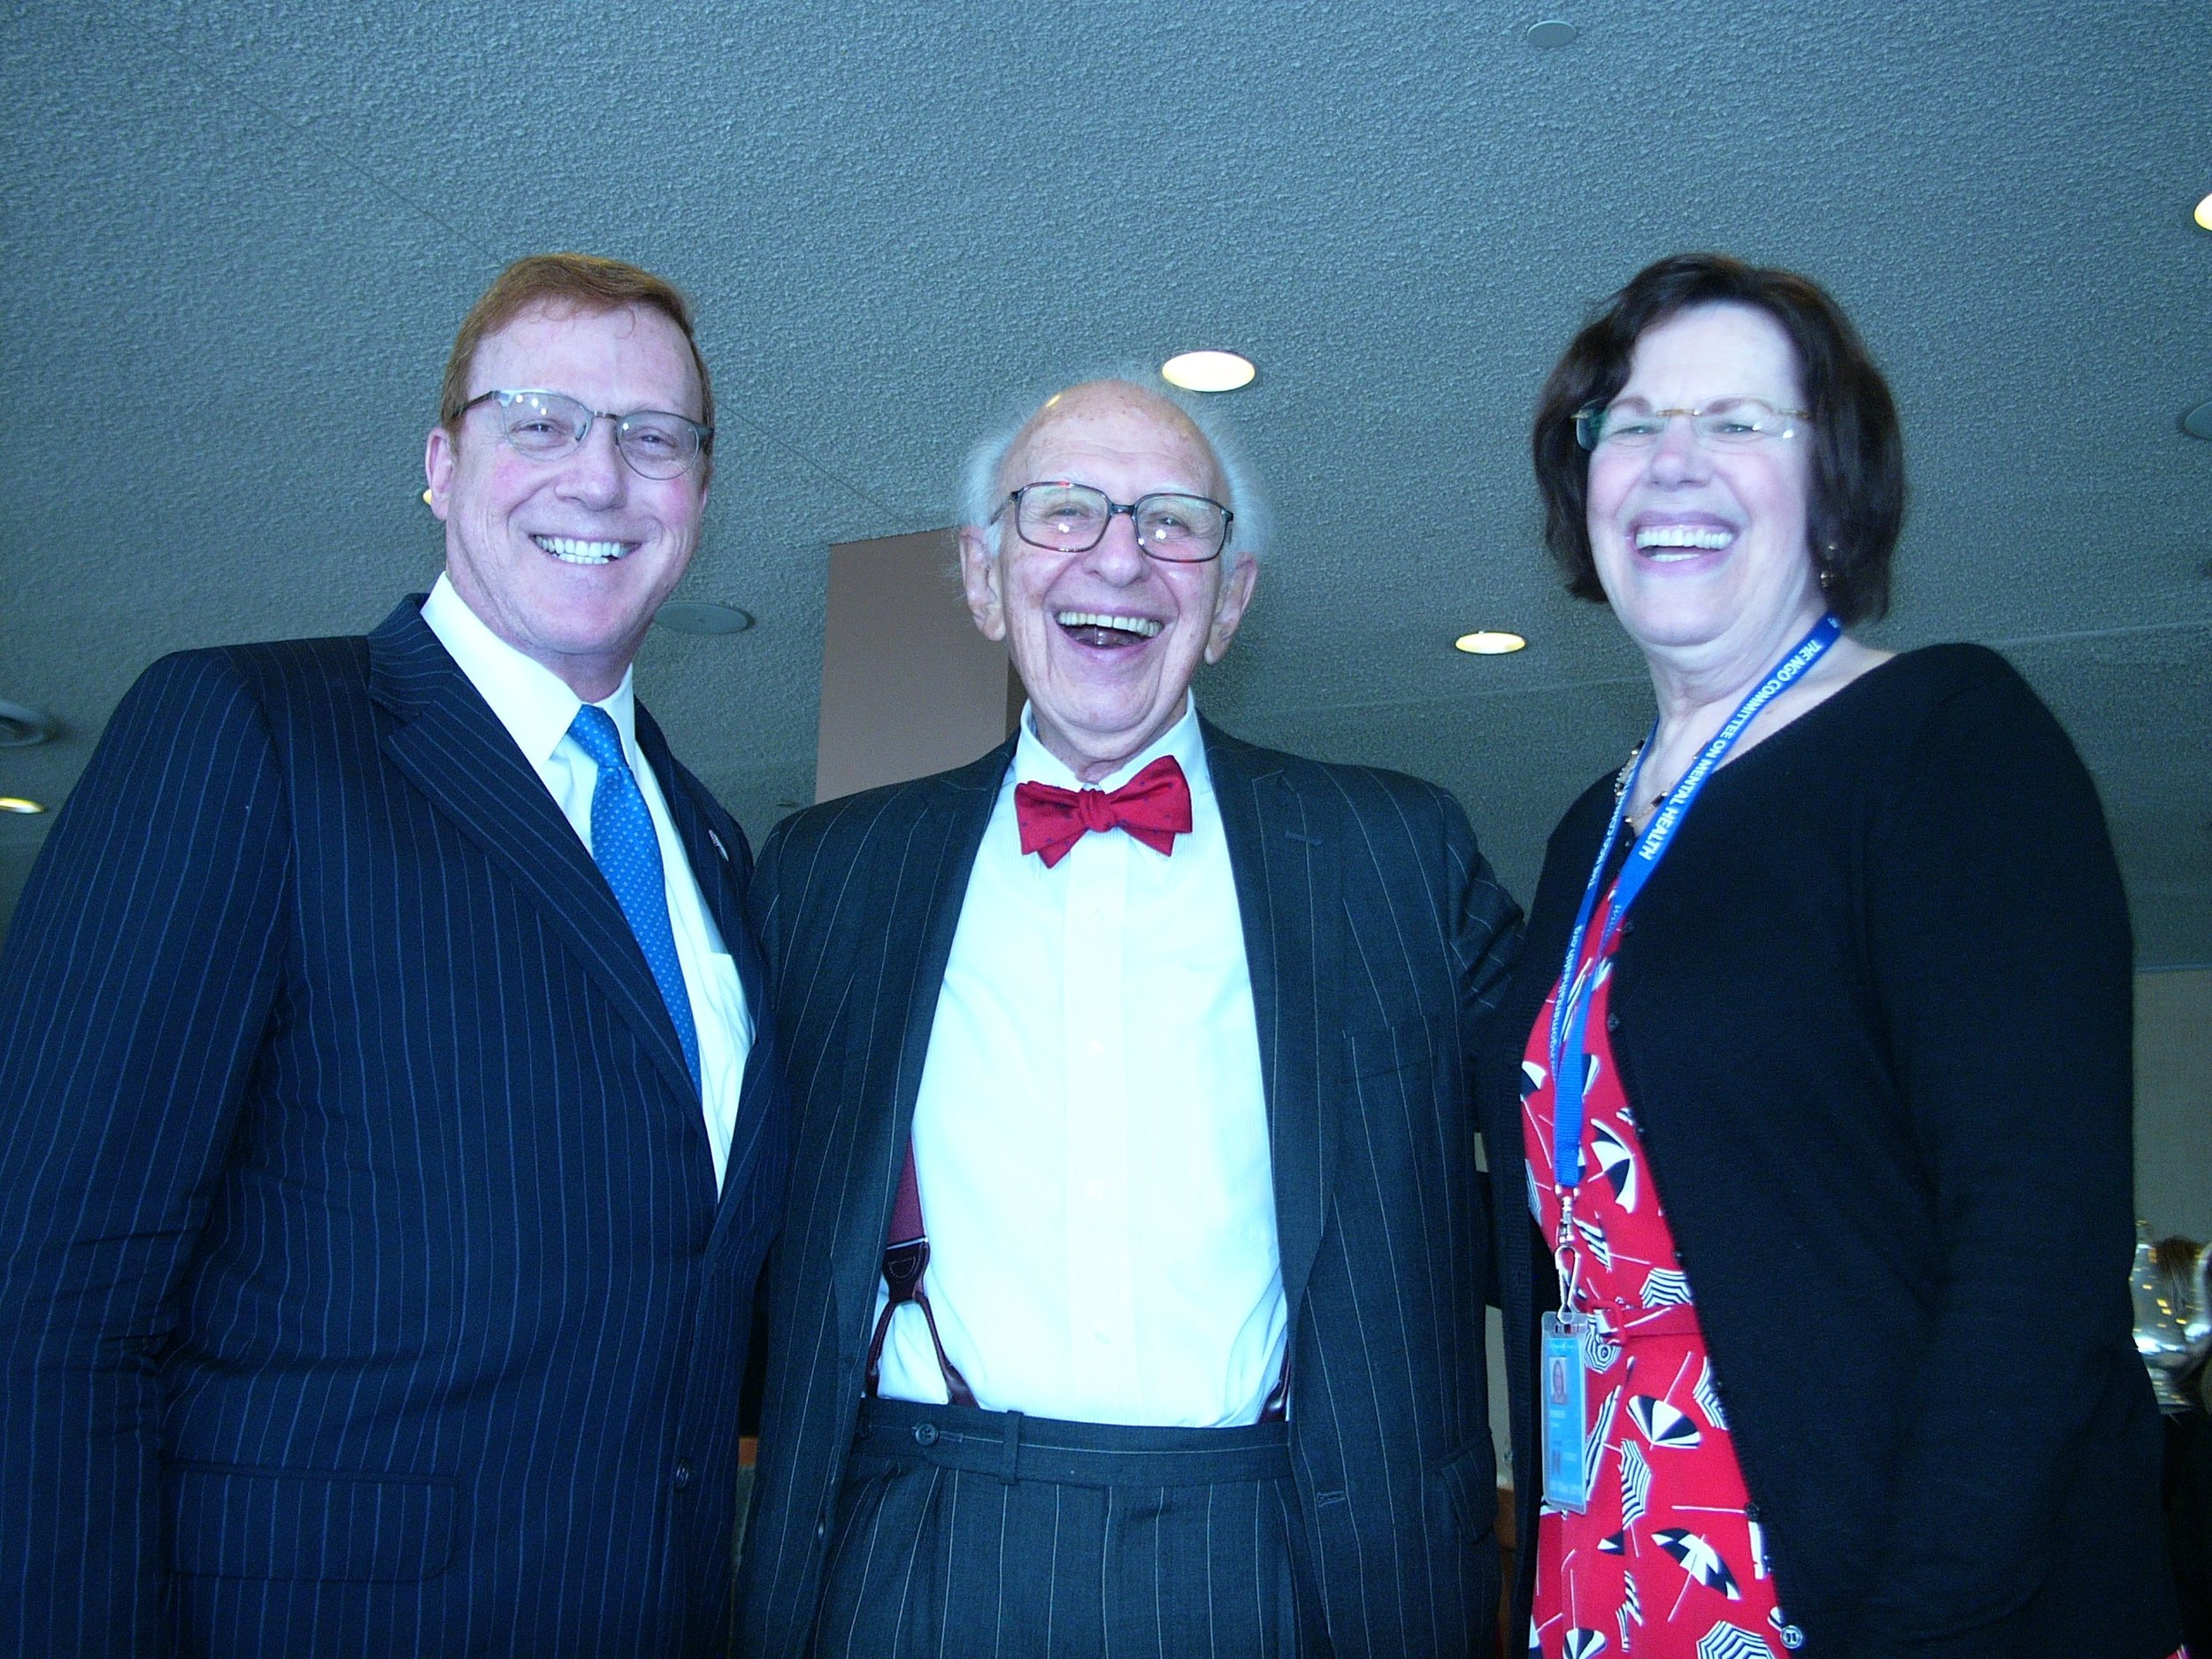 Dr. saul Levin - CEO and Medical director of american psychiatric association, Dr. eric r. kandel - 2000 nobel prize winner and keynote speaker, and dr. vivian pender - chair ngo cmh at un ngo committee on mental health 20th anniversary gala luncheon 10/21/2016